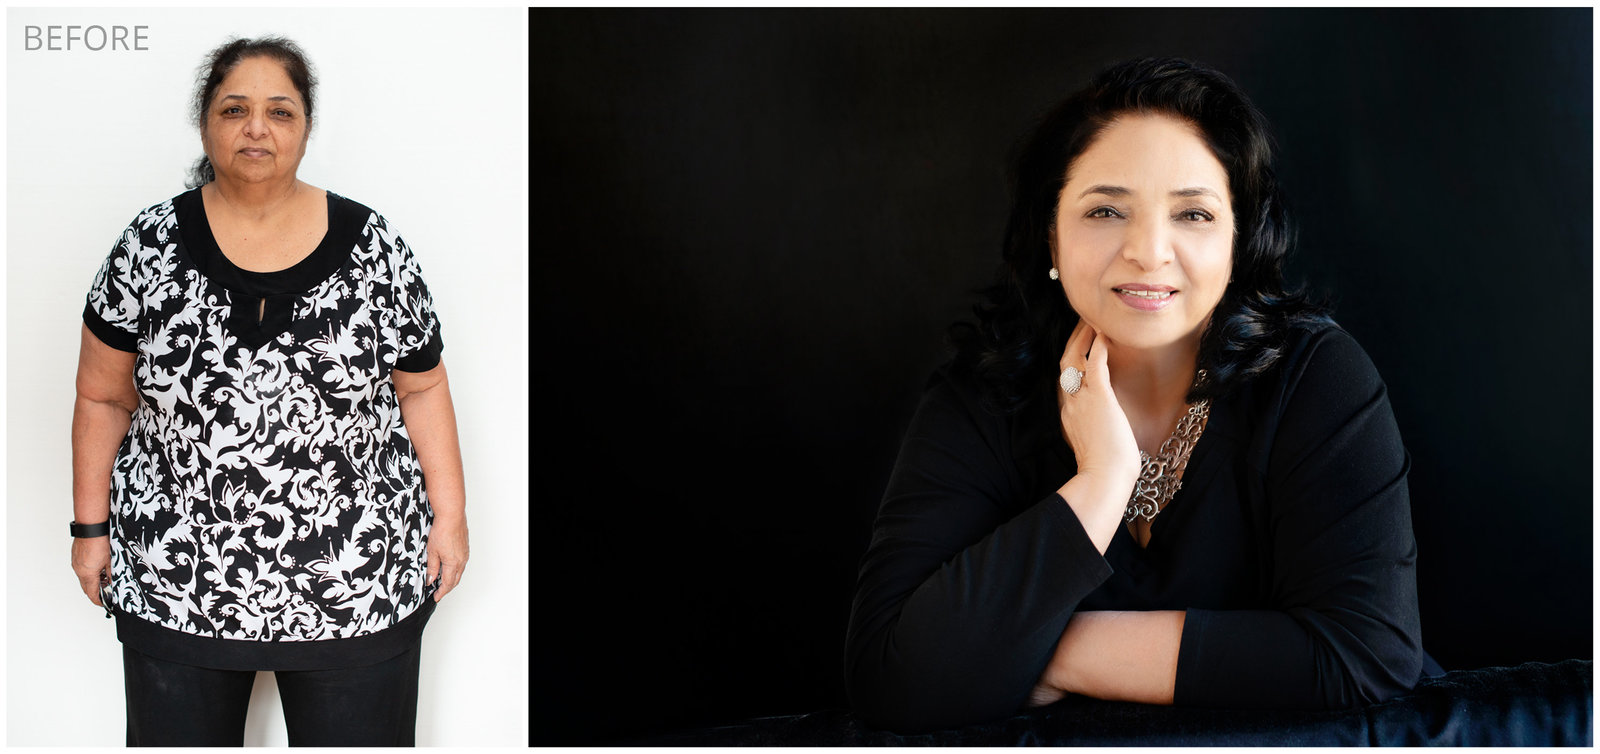 40 over 40 woman portrait  photographer project Toronto - Oakville - Brampton- Mississauga - Burlington- Vaughan- Richmond hill -Hamilton-George town_before after makeover